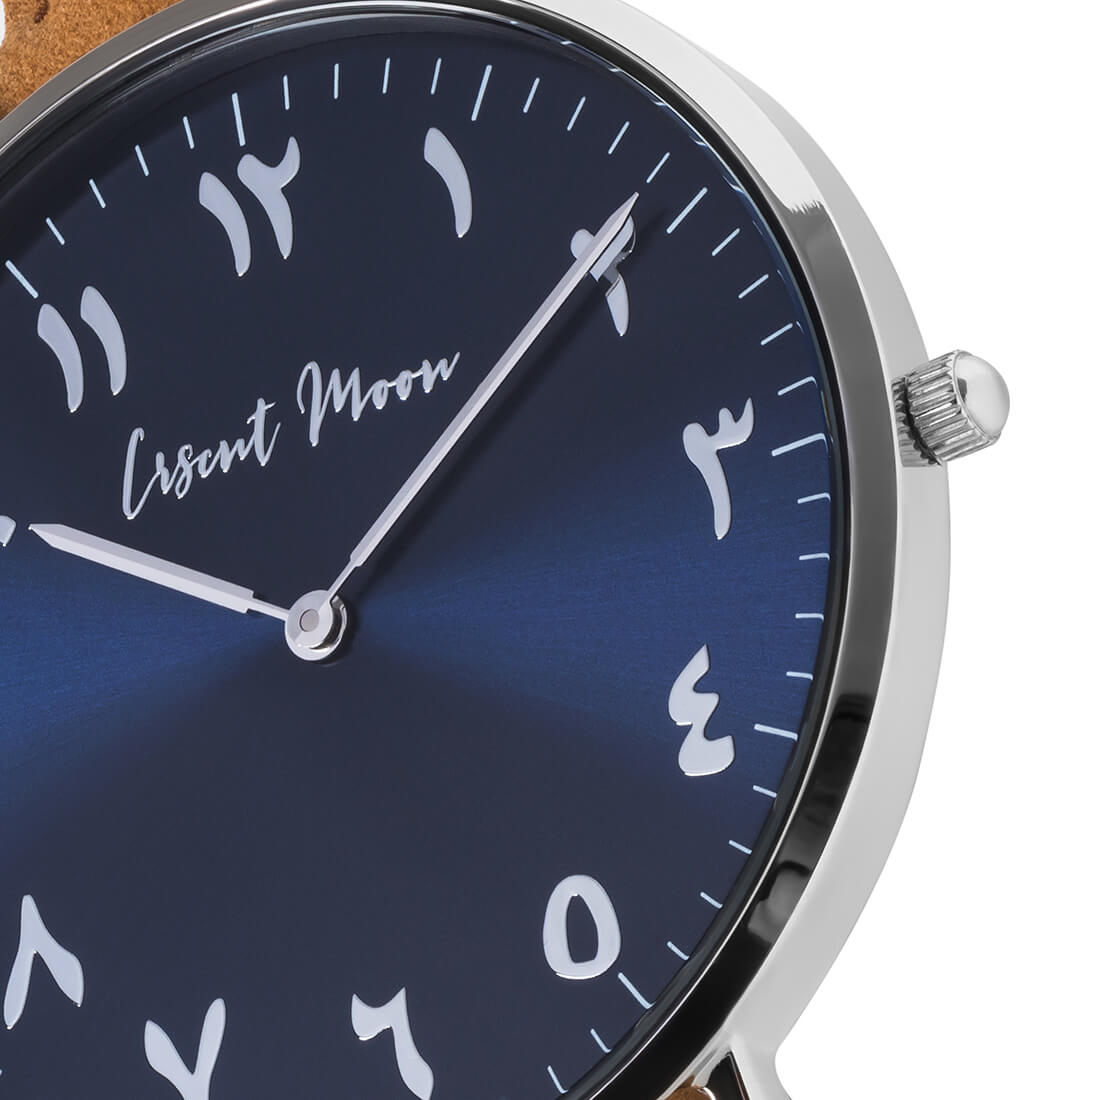 Arabic Numeral Watch with Tan Leather Strap, Silver Case, and Blue Dial by Crscnt Moon. Close Up Photo.